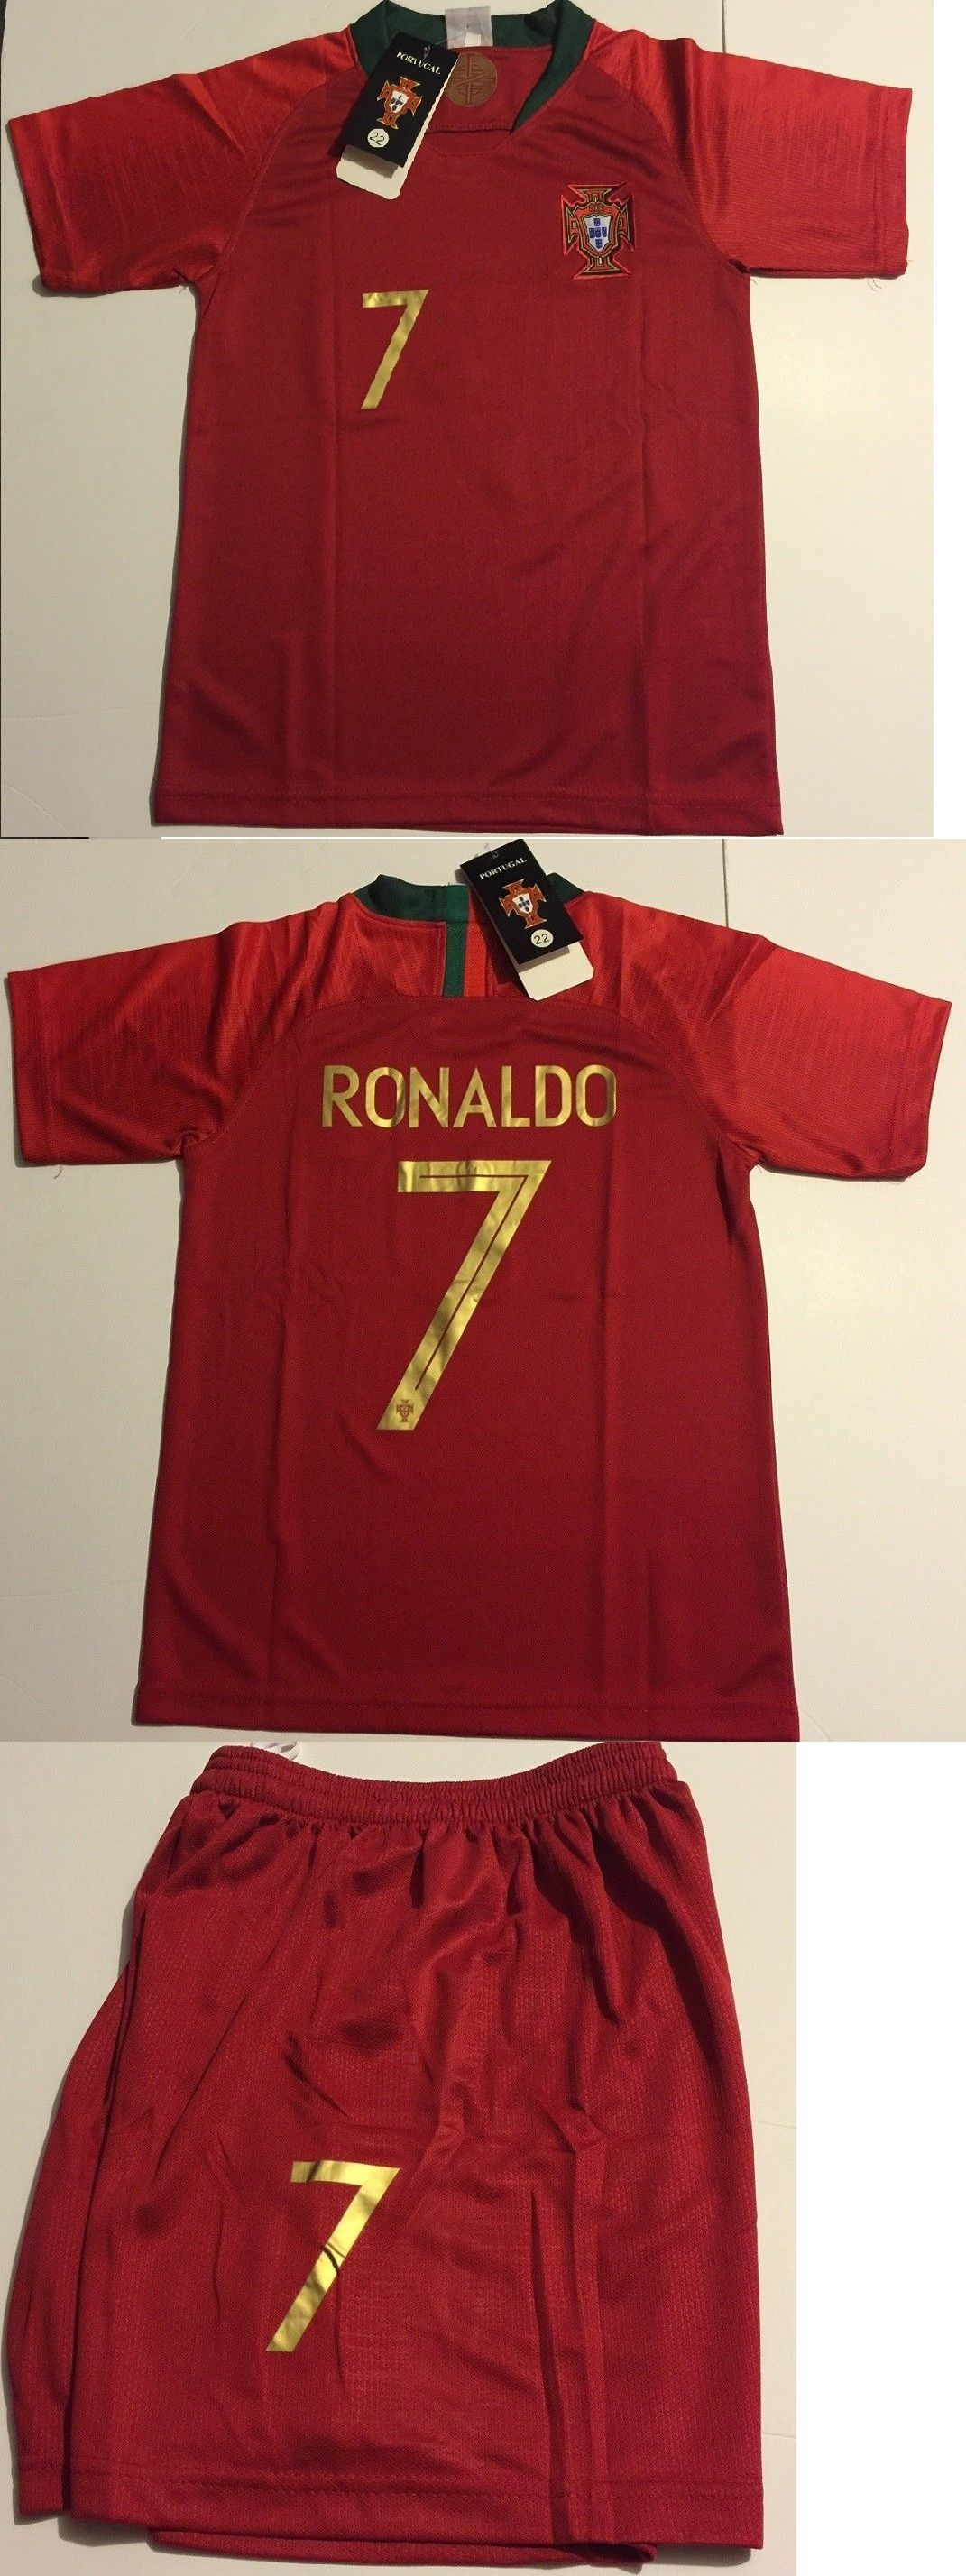 best website 9ad02 4d76c Clothing Shoes and Accessories 159178: Portugal Ronaldo Kids ...